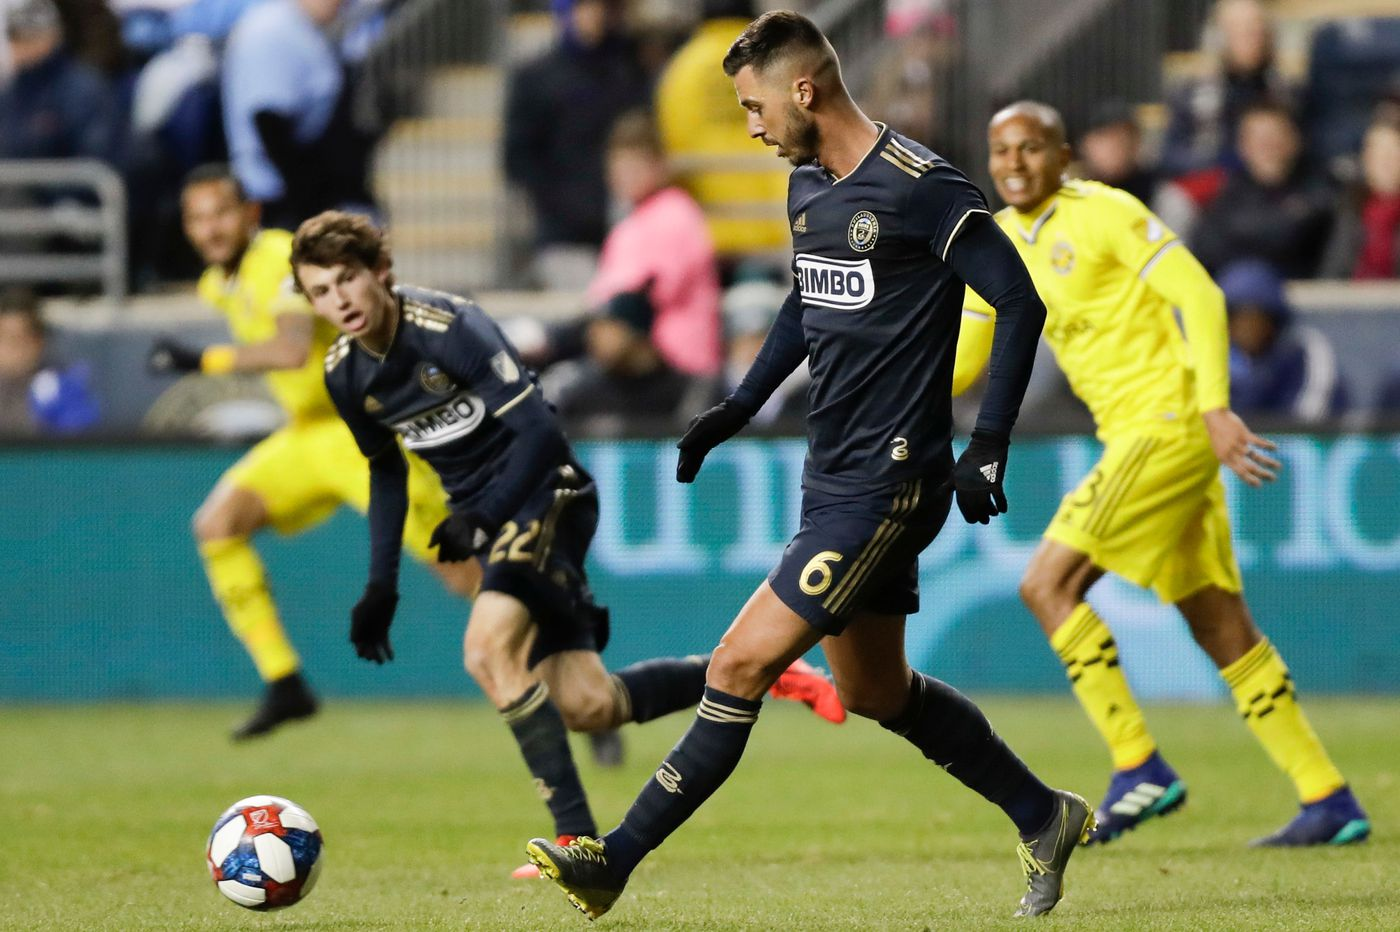 25 de julio. Pronóstico Philadelphia Union vs New England Revolution